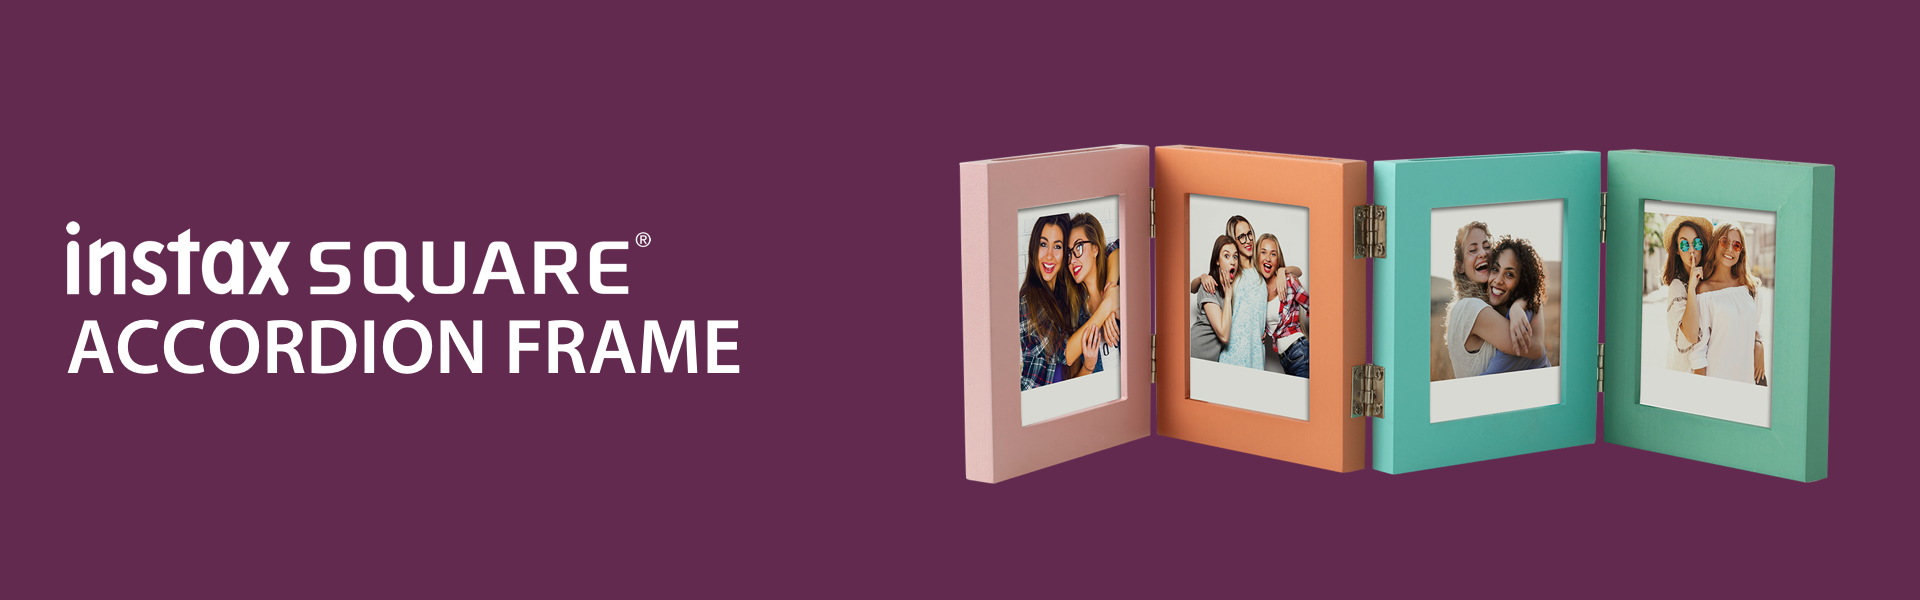 Plum color hero image with Square Accordion Frame